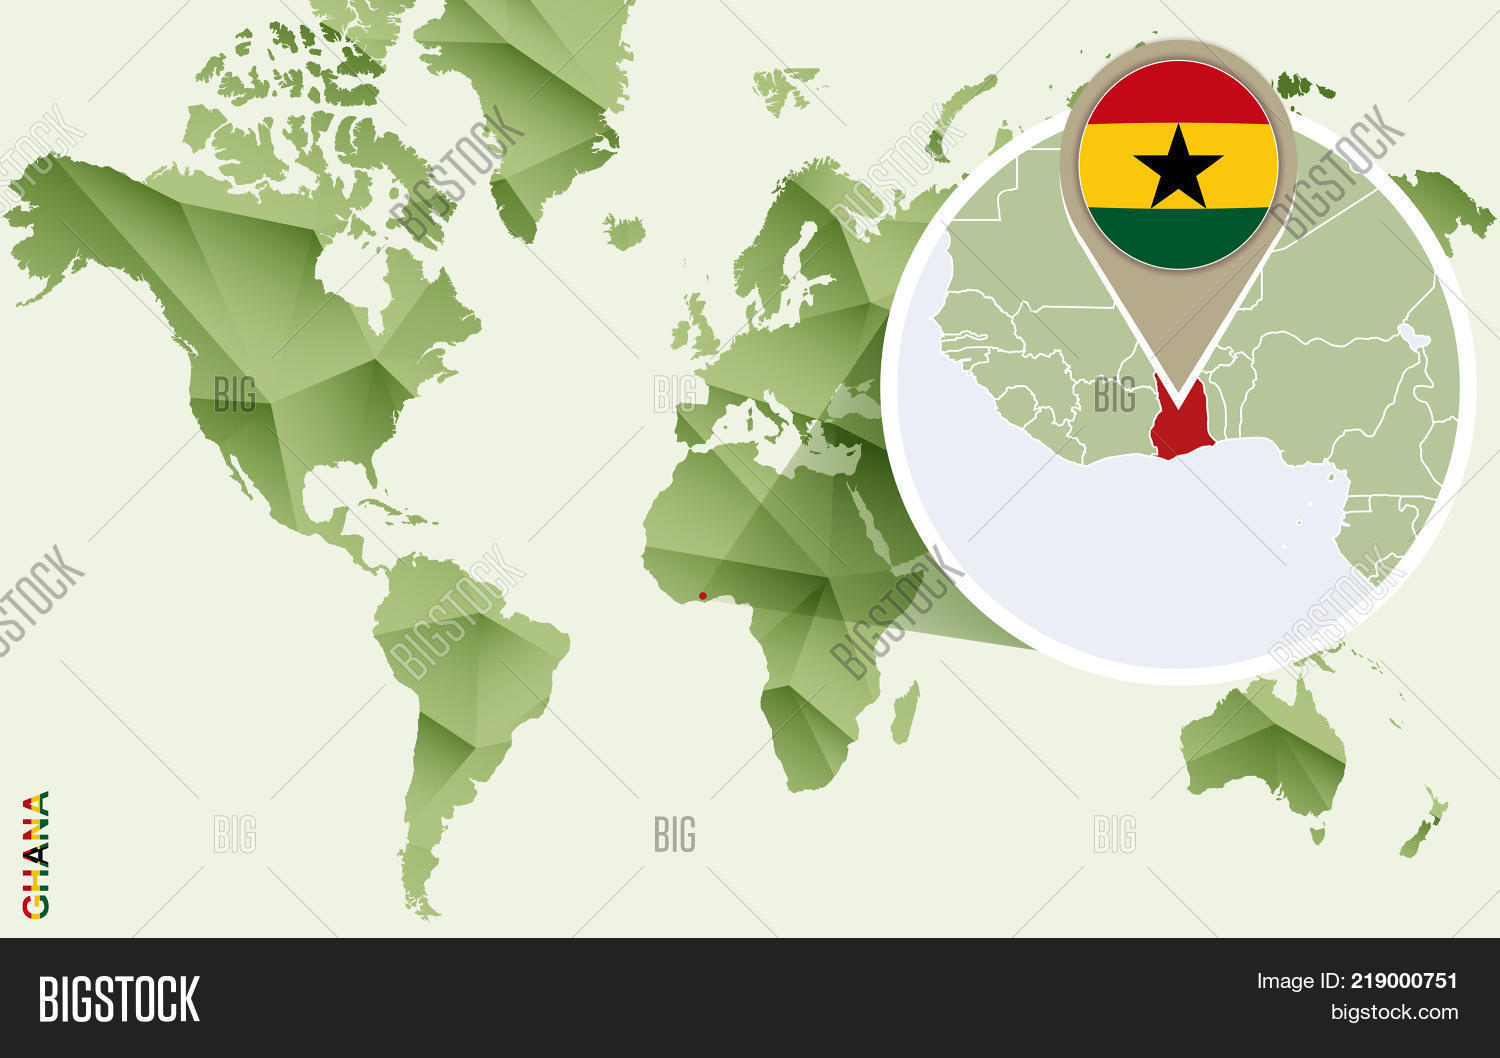 Infographic Ghana Detailed Map Vector Photo Bigstock - Ghana map vector